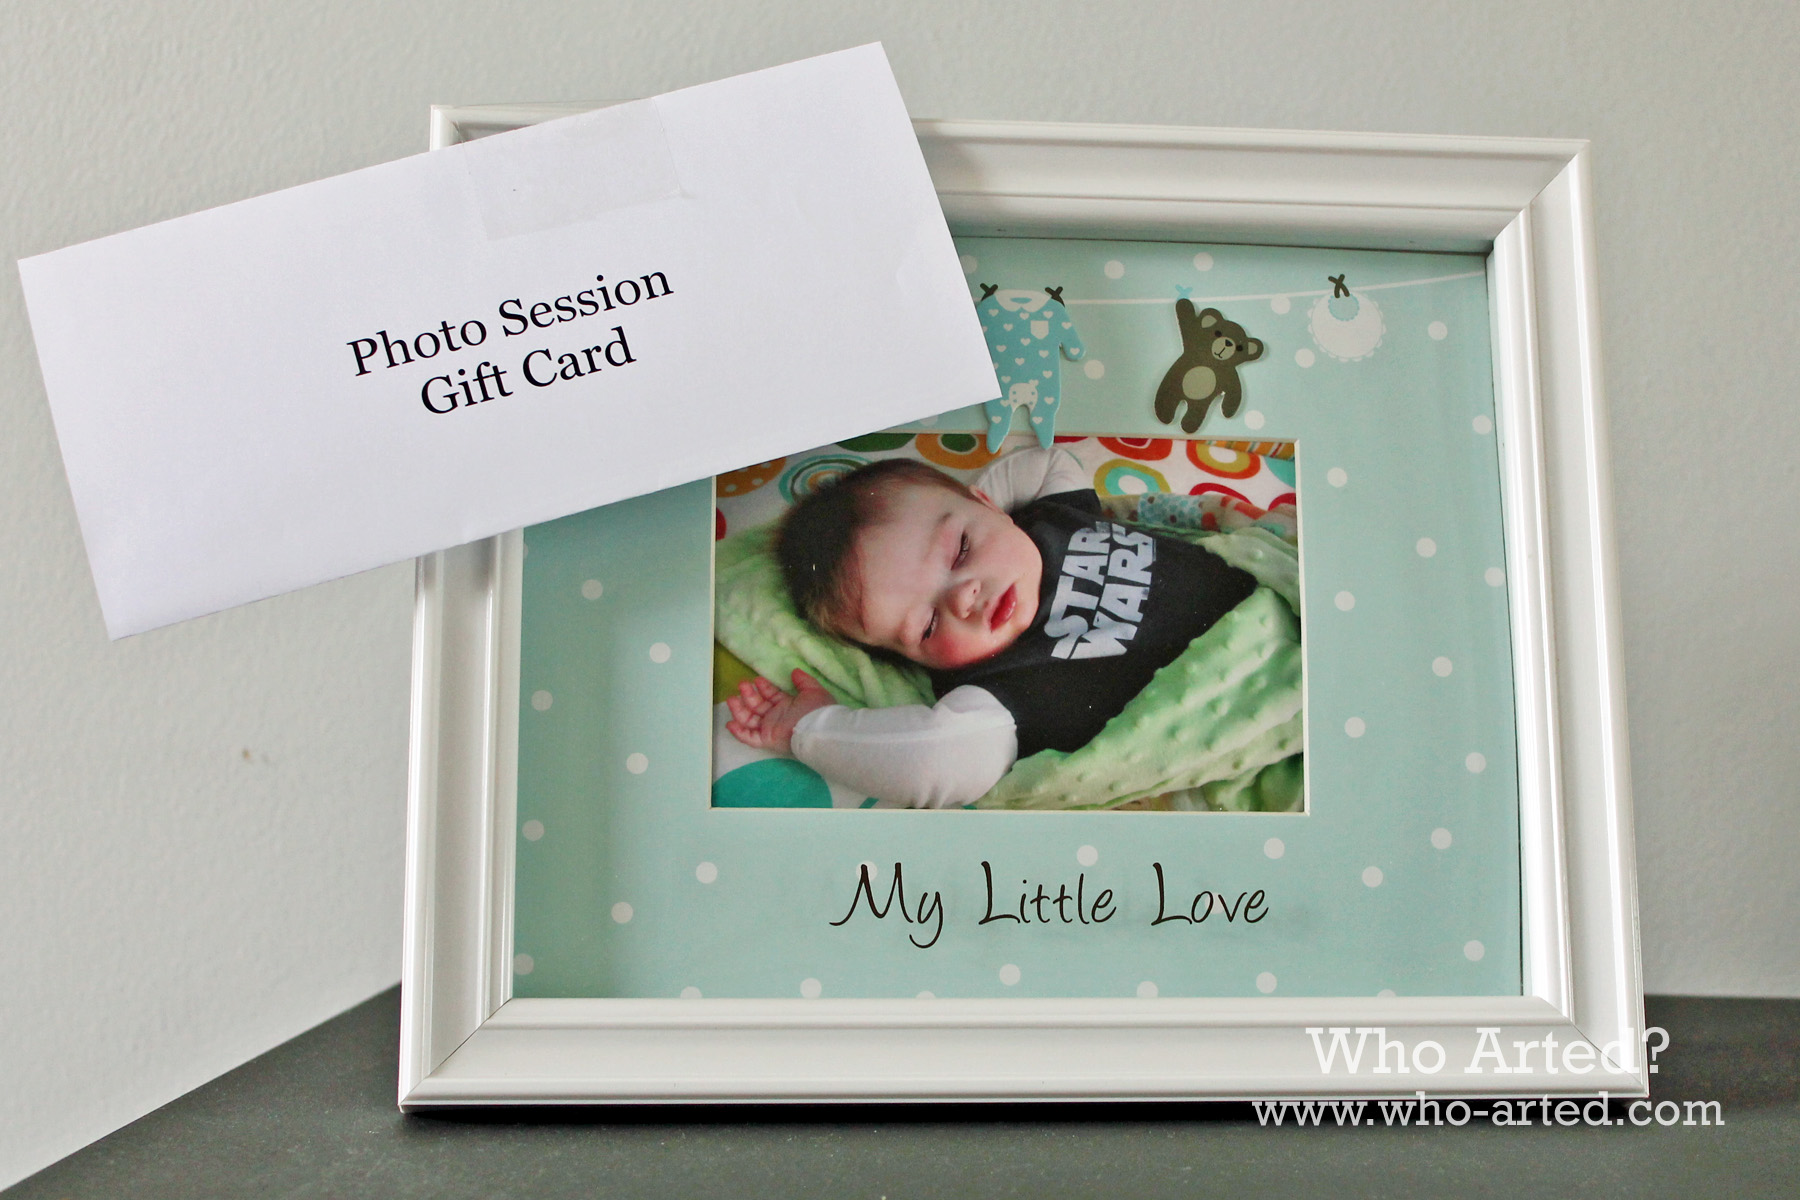 Creative Baby Shower Gift Ideas - Who Arted?